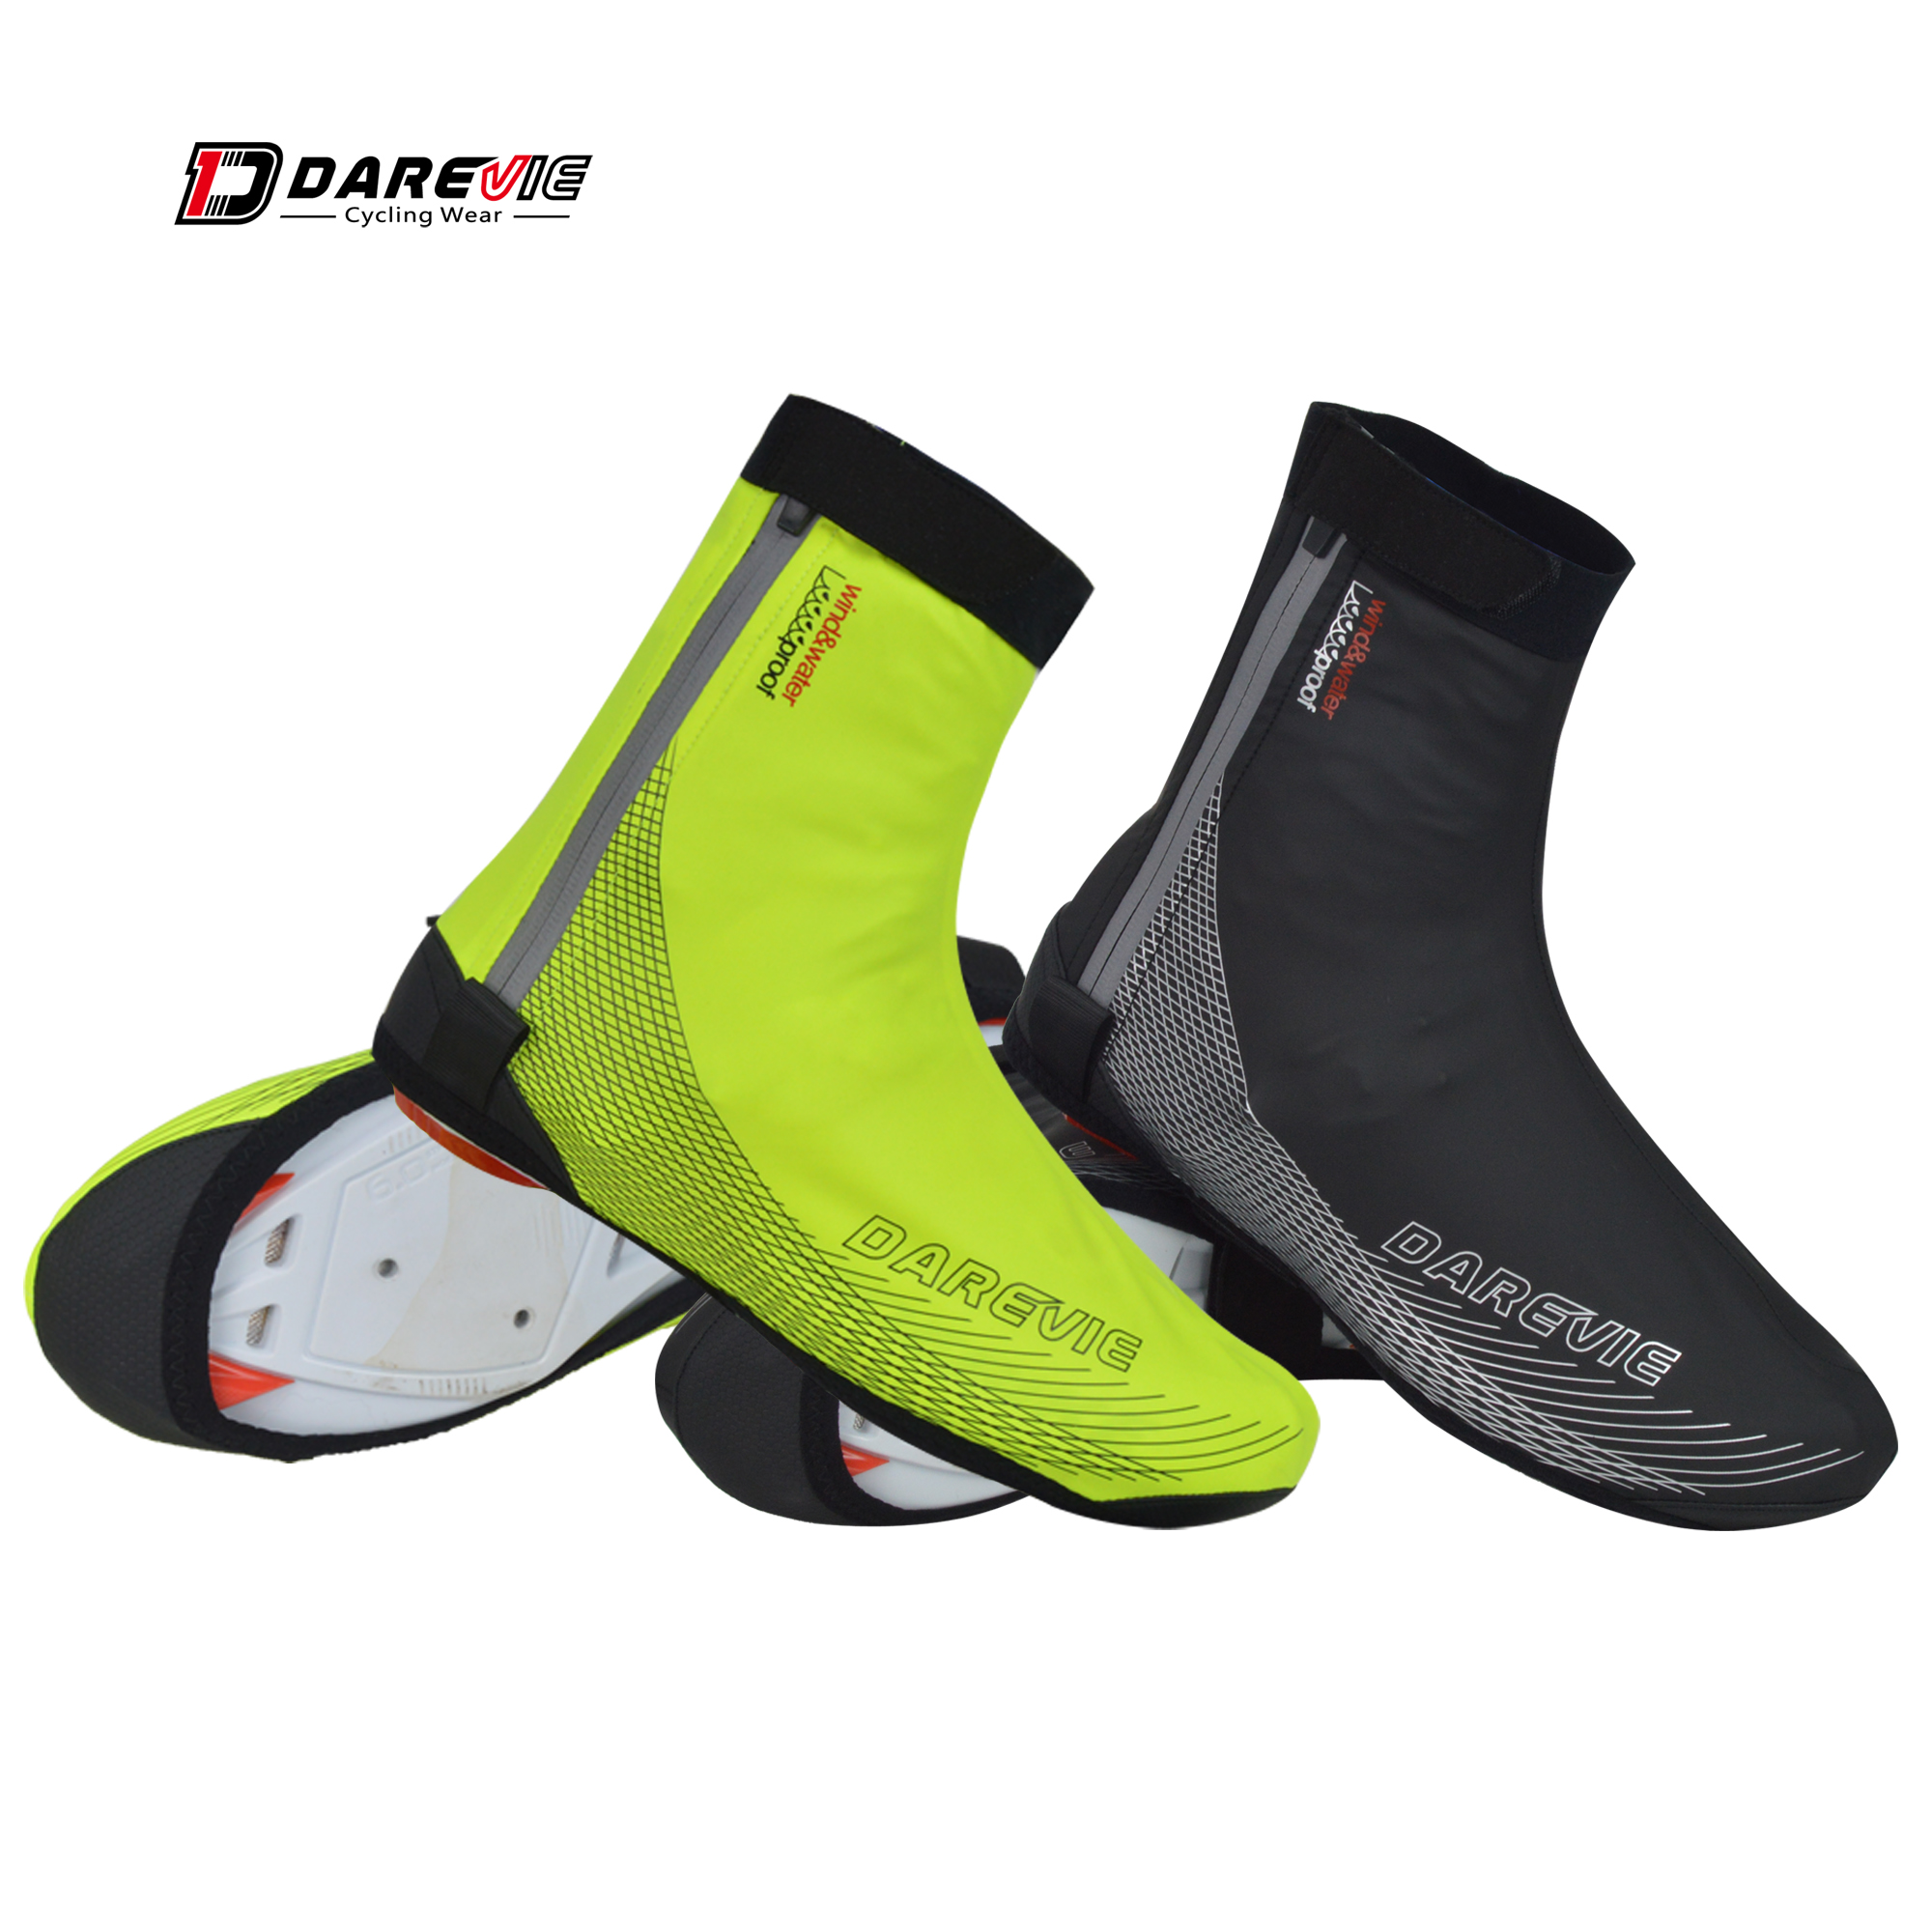 Darevie Cycling Shoe Covers Windproof Winter Cycling Shoes Covers Warm Waterproof Cycling Lock Shoes Cover Reflective Zipper